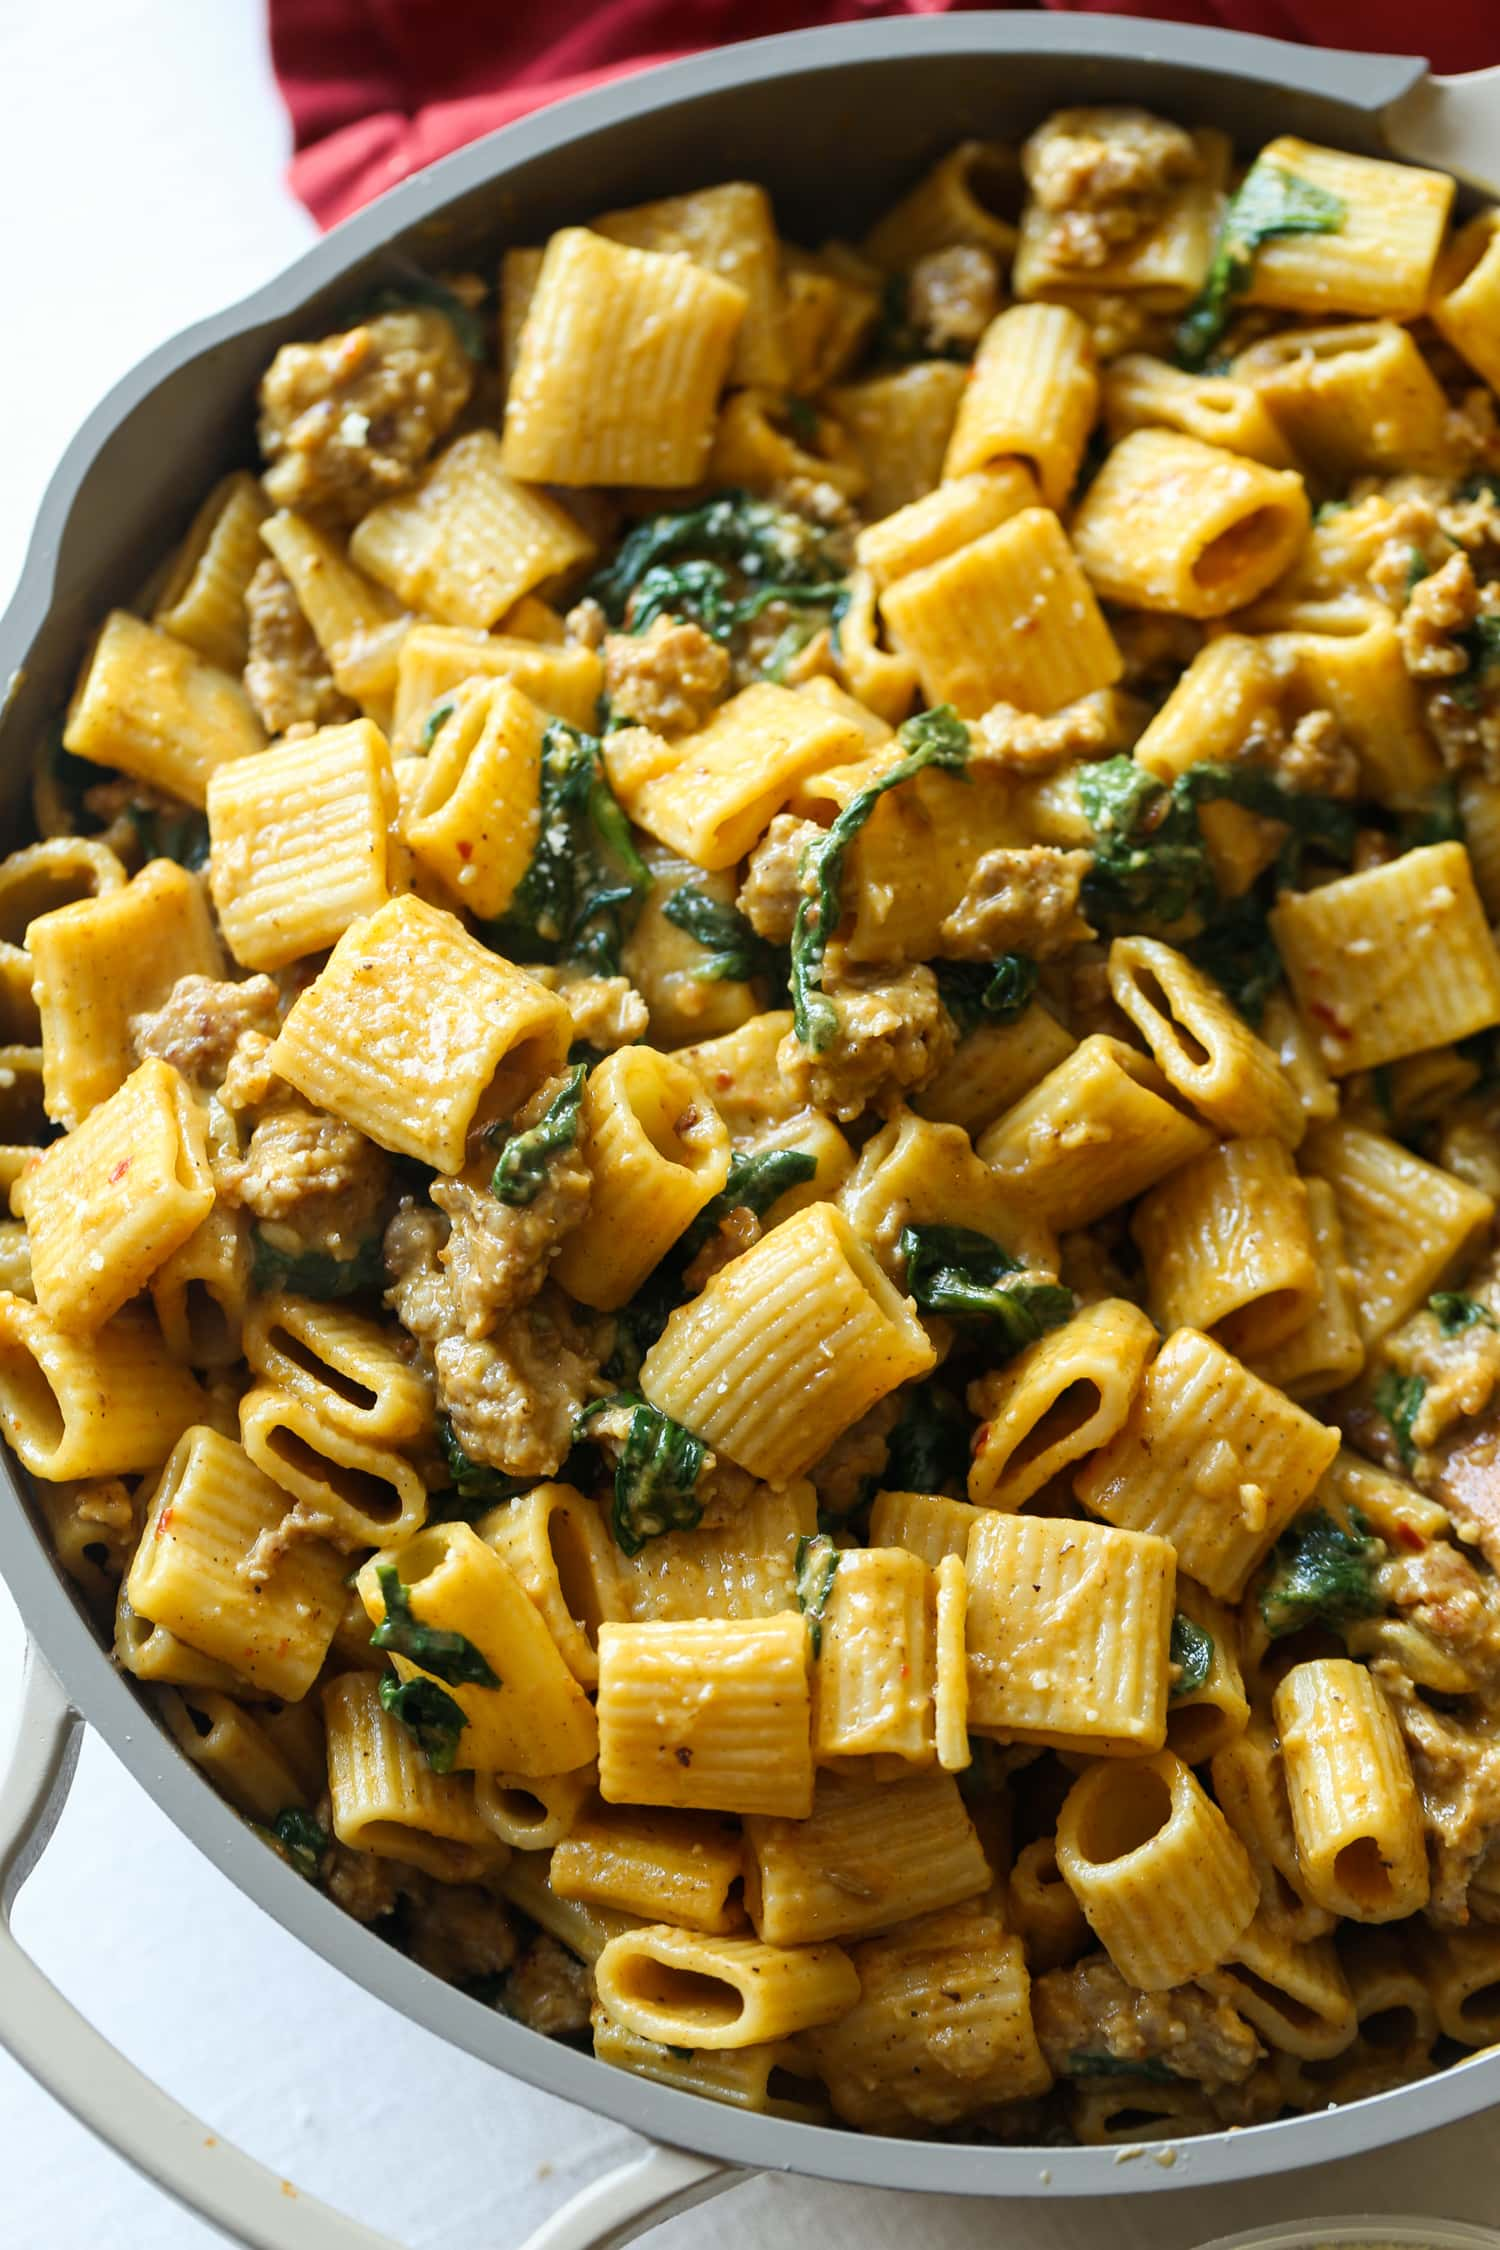 Noodles with sausage and spinach in a pumpkin cream sauce.